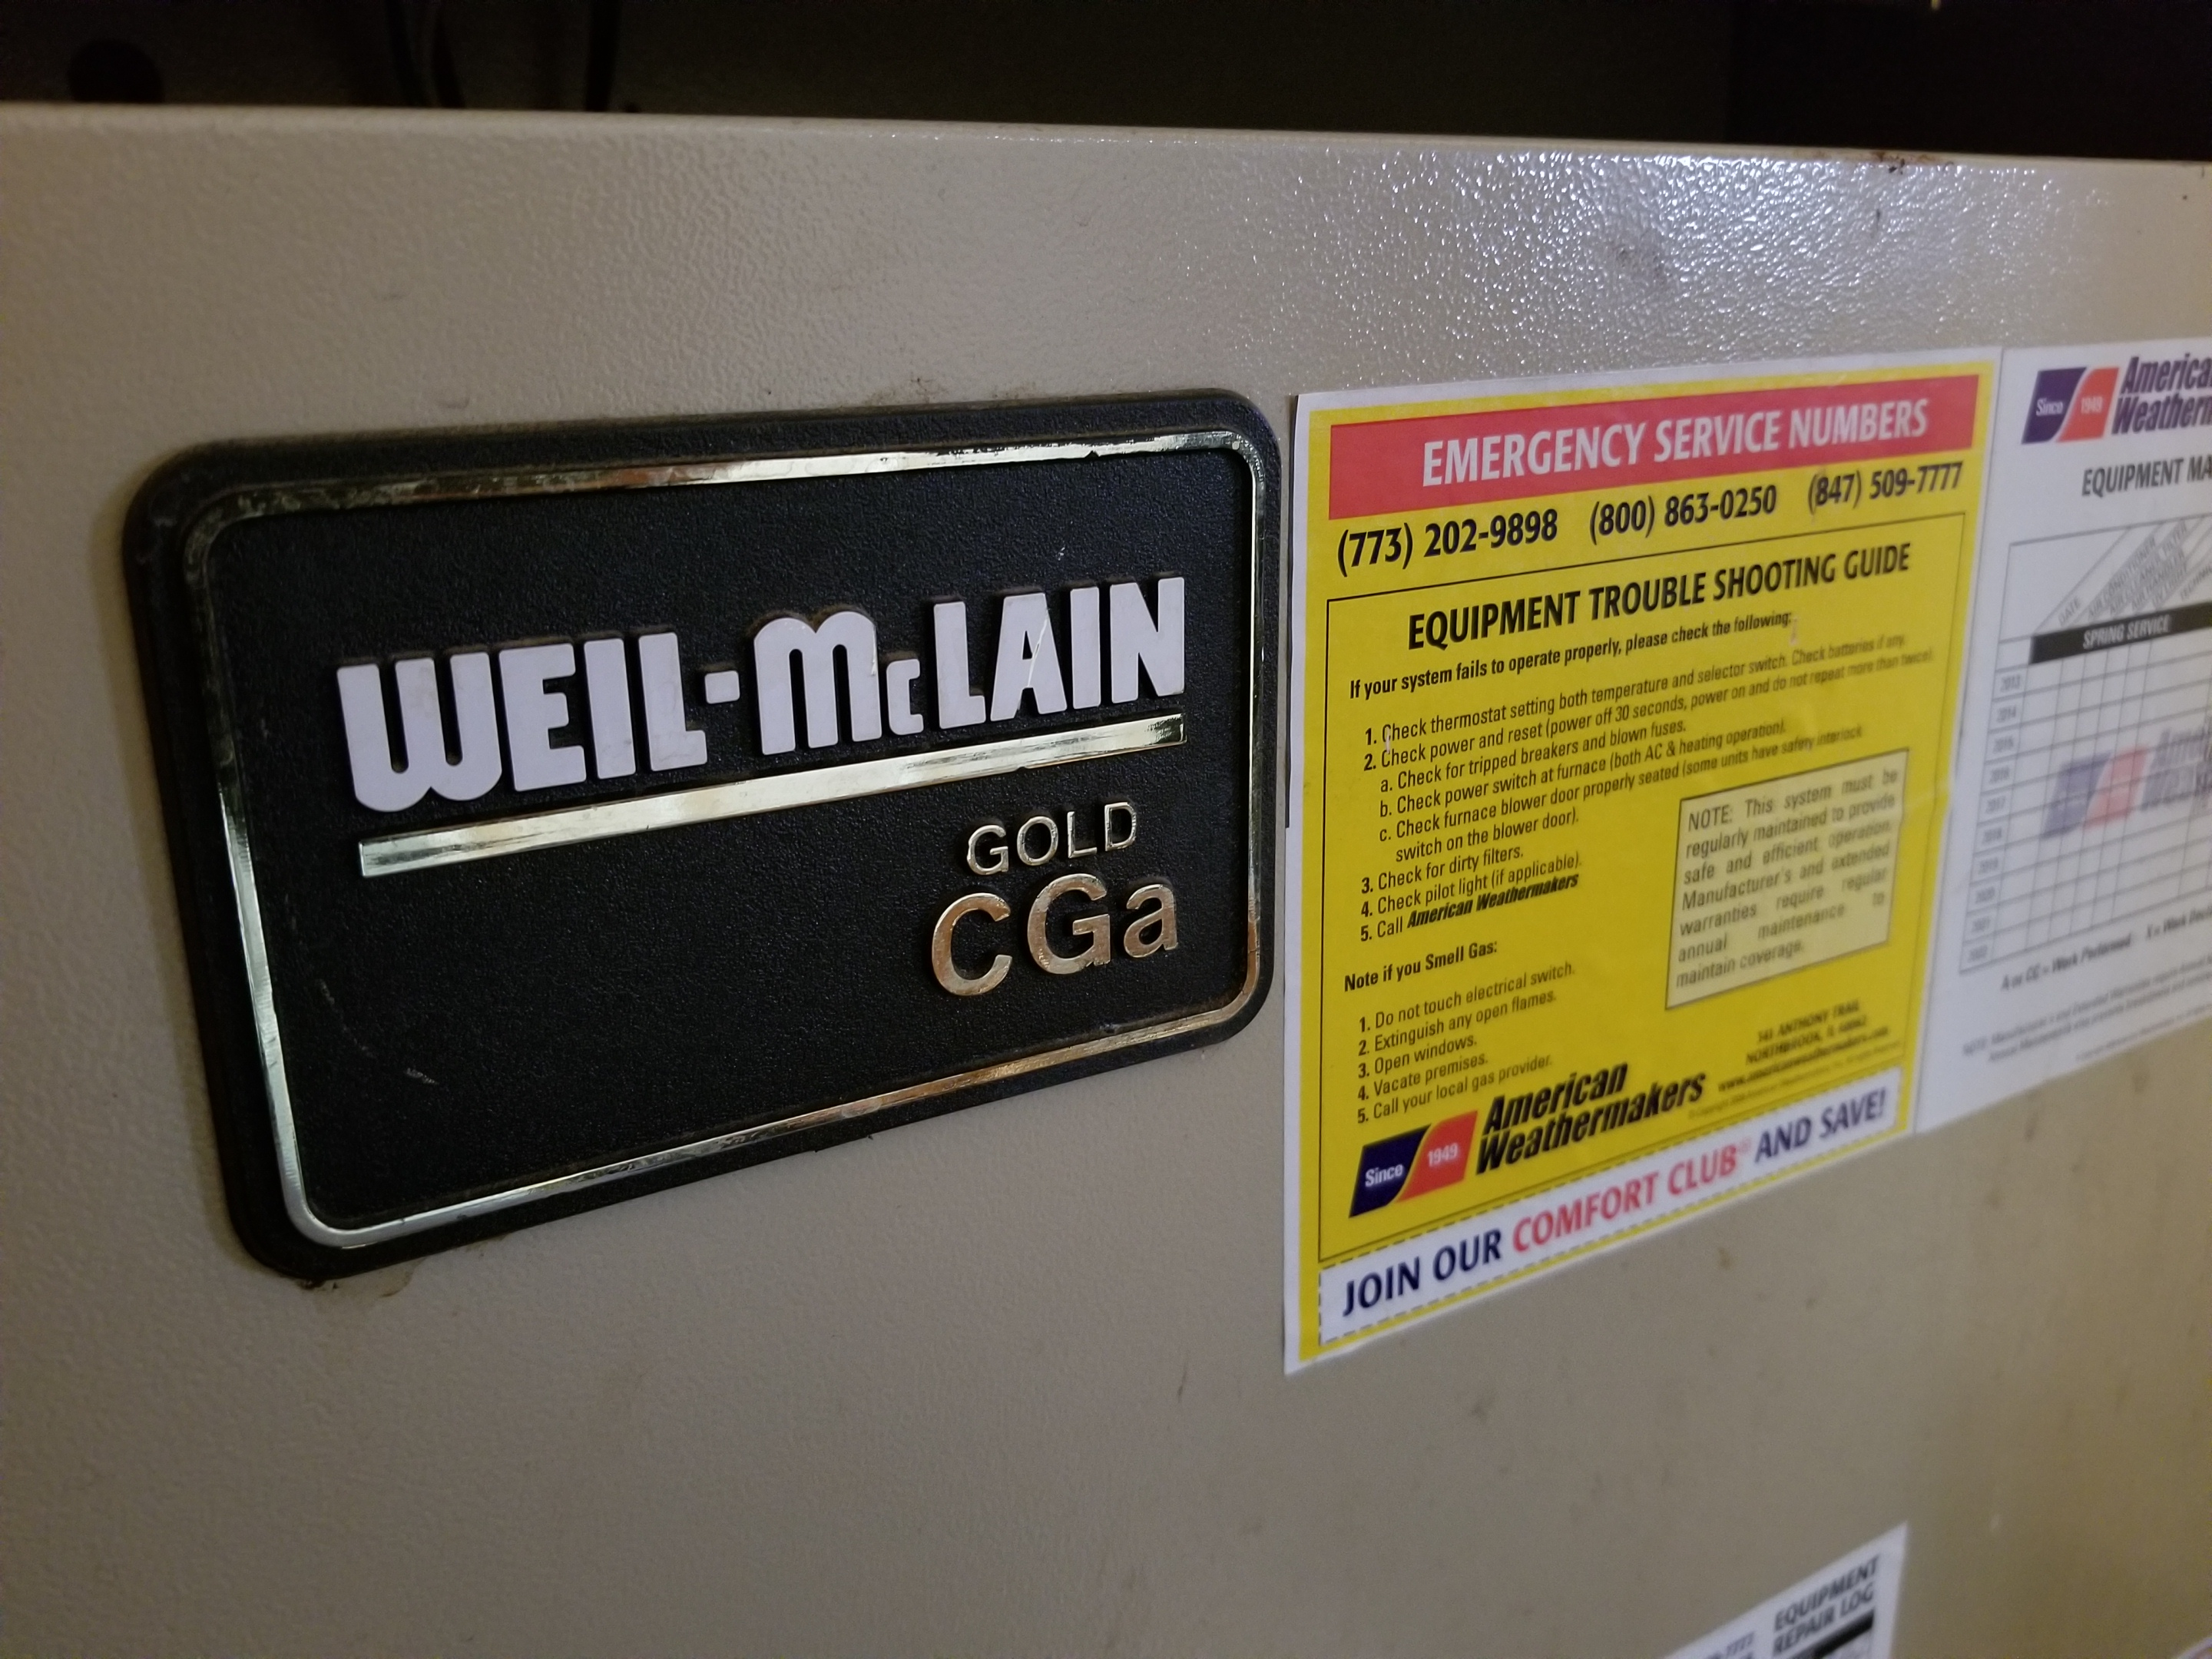 Weil McLain boiler, tune up and American Weathermakers. 847-509-7777